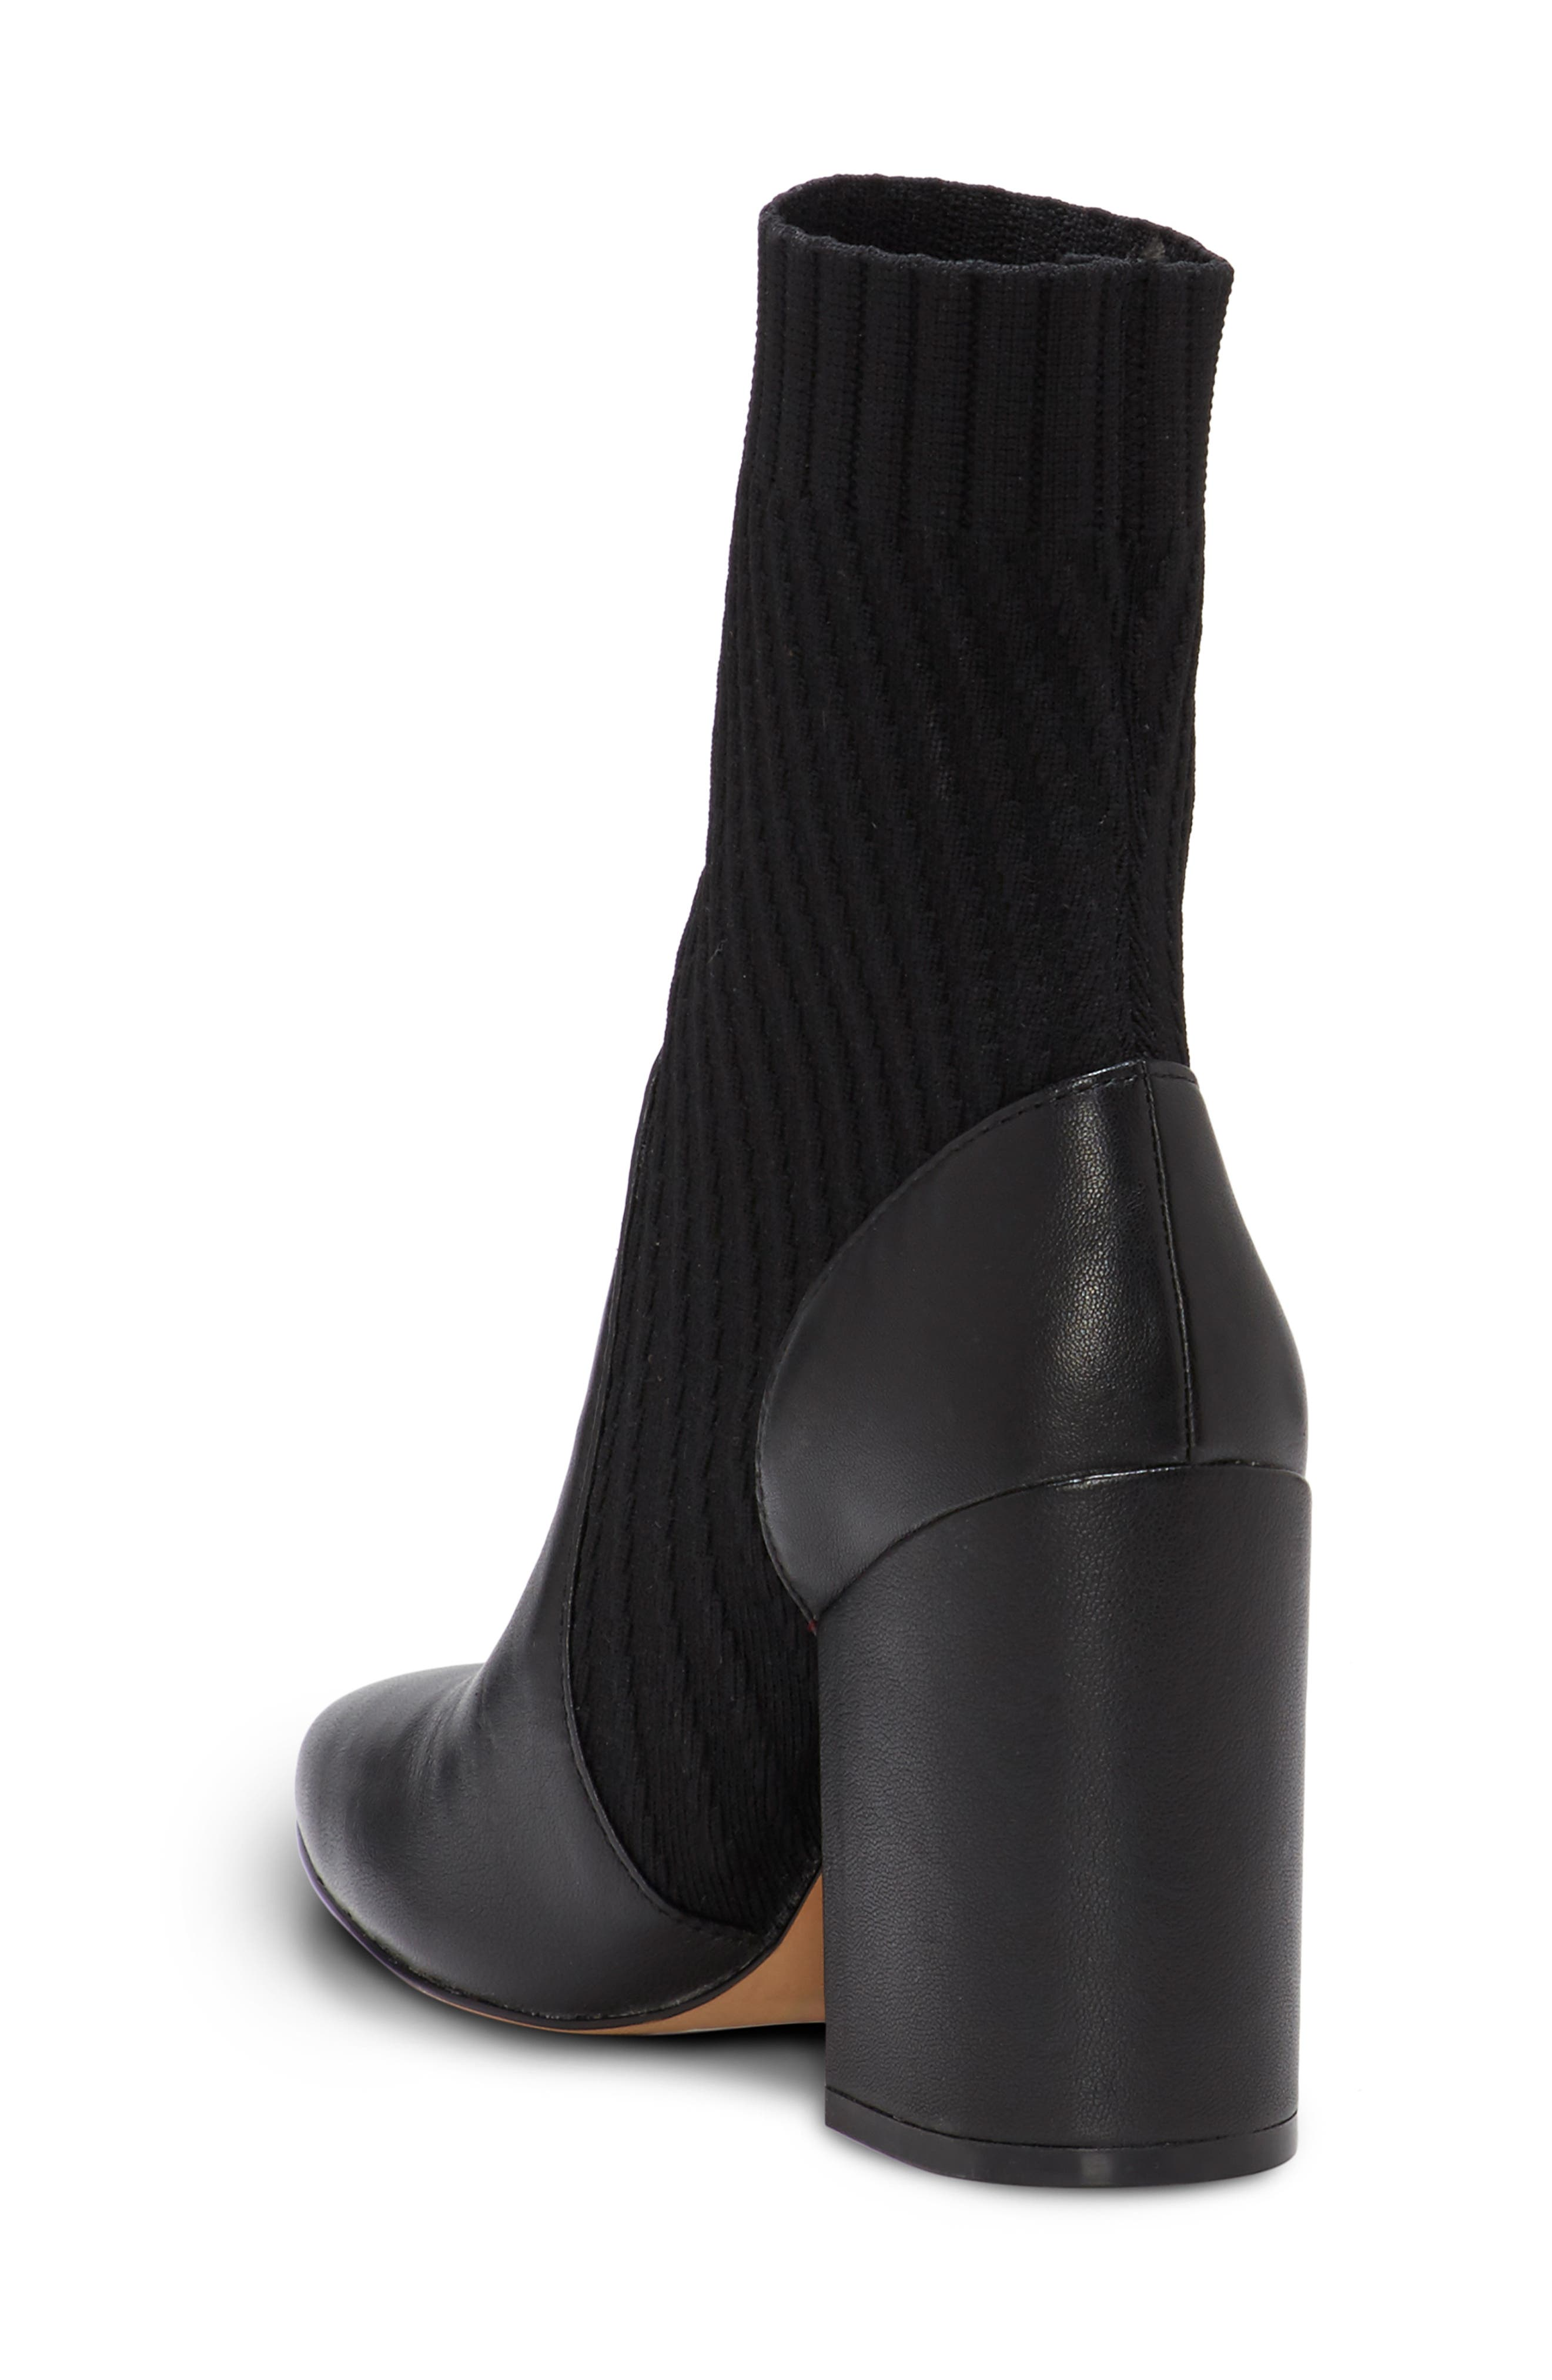 VINCE CAMUTO, Diandra Boot, Alternate thumbnail 2, color, BLACK LEATHER